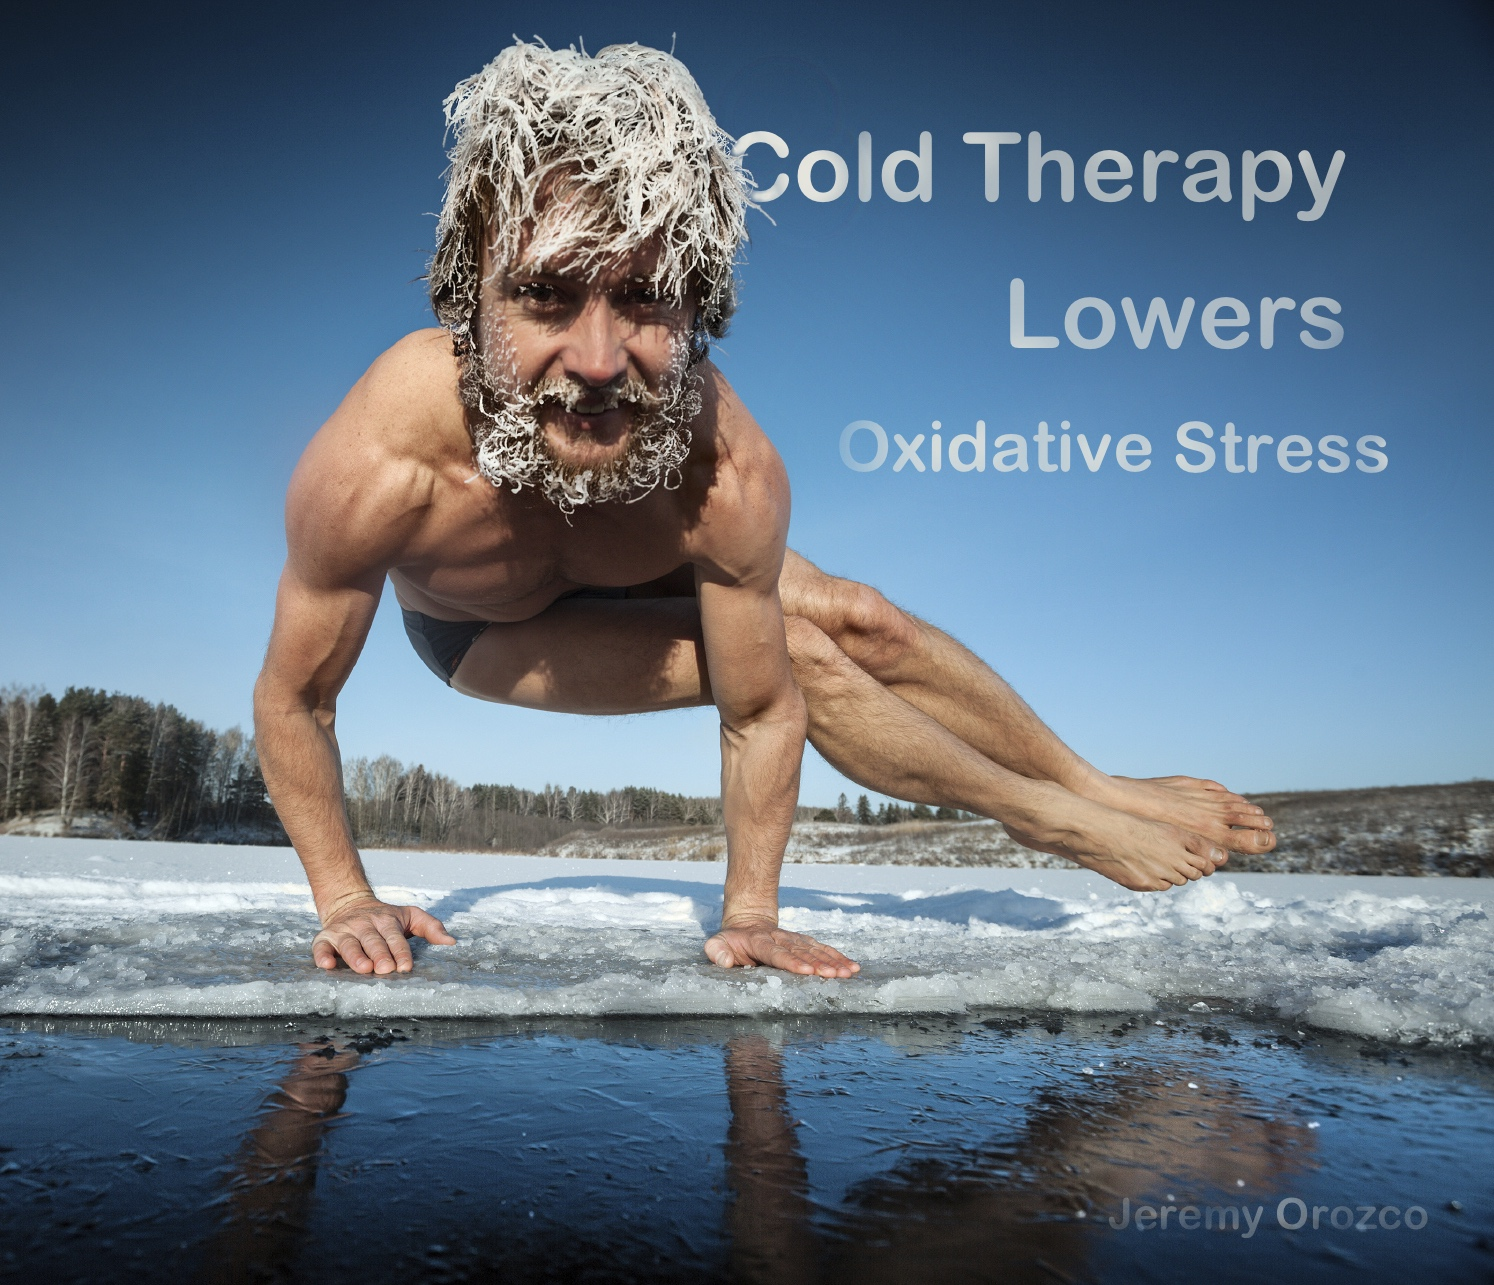 Wim Hof Everest >> The Cold Cure: What Freezing Water and Extreme Breathing can do for your Performance - MtbApp